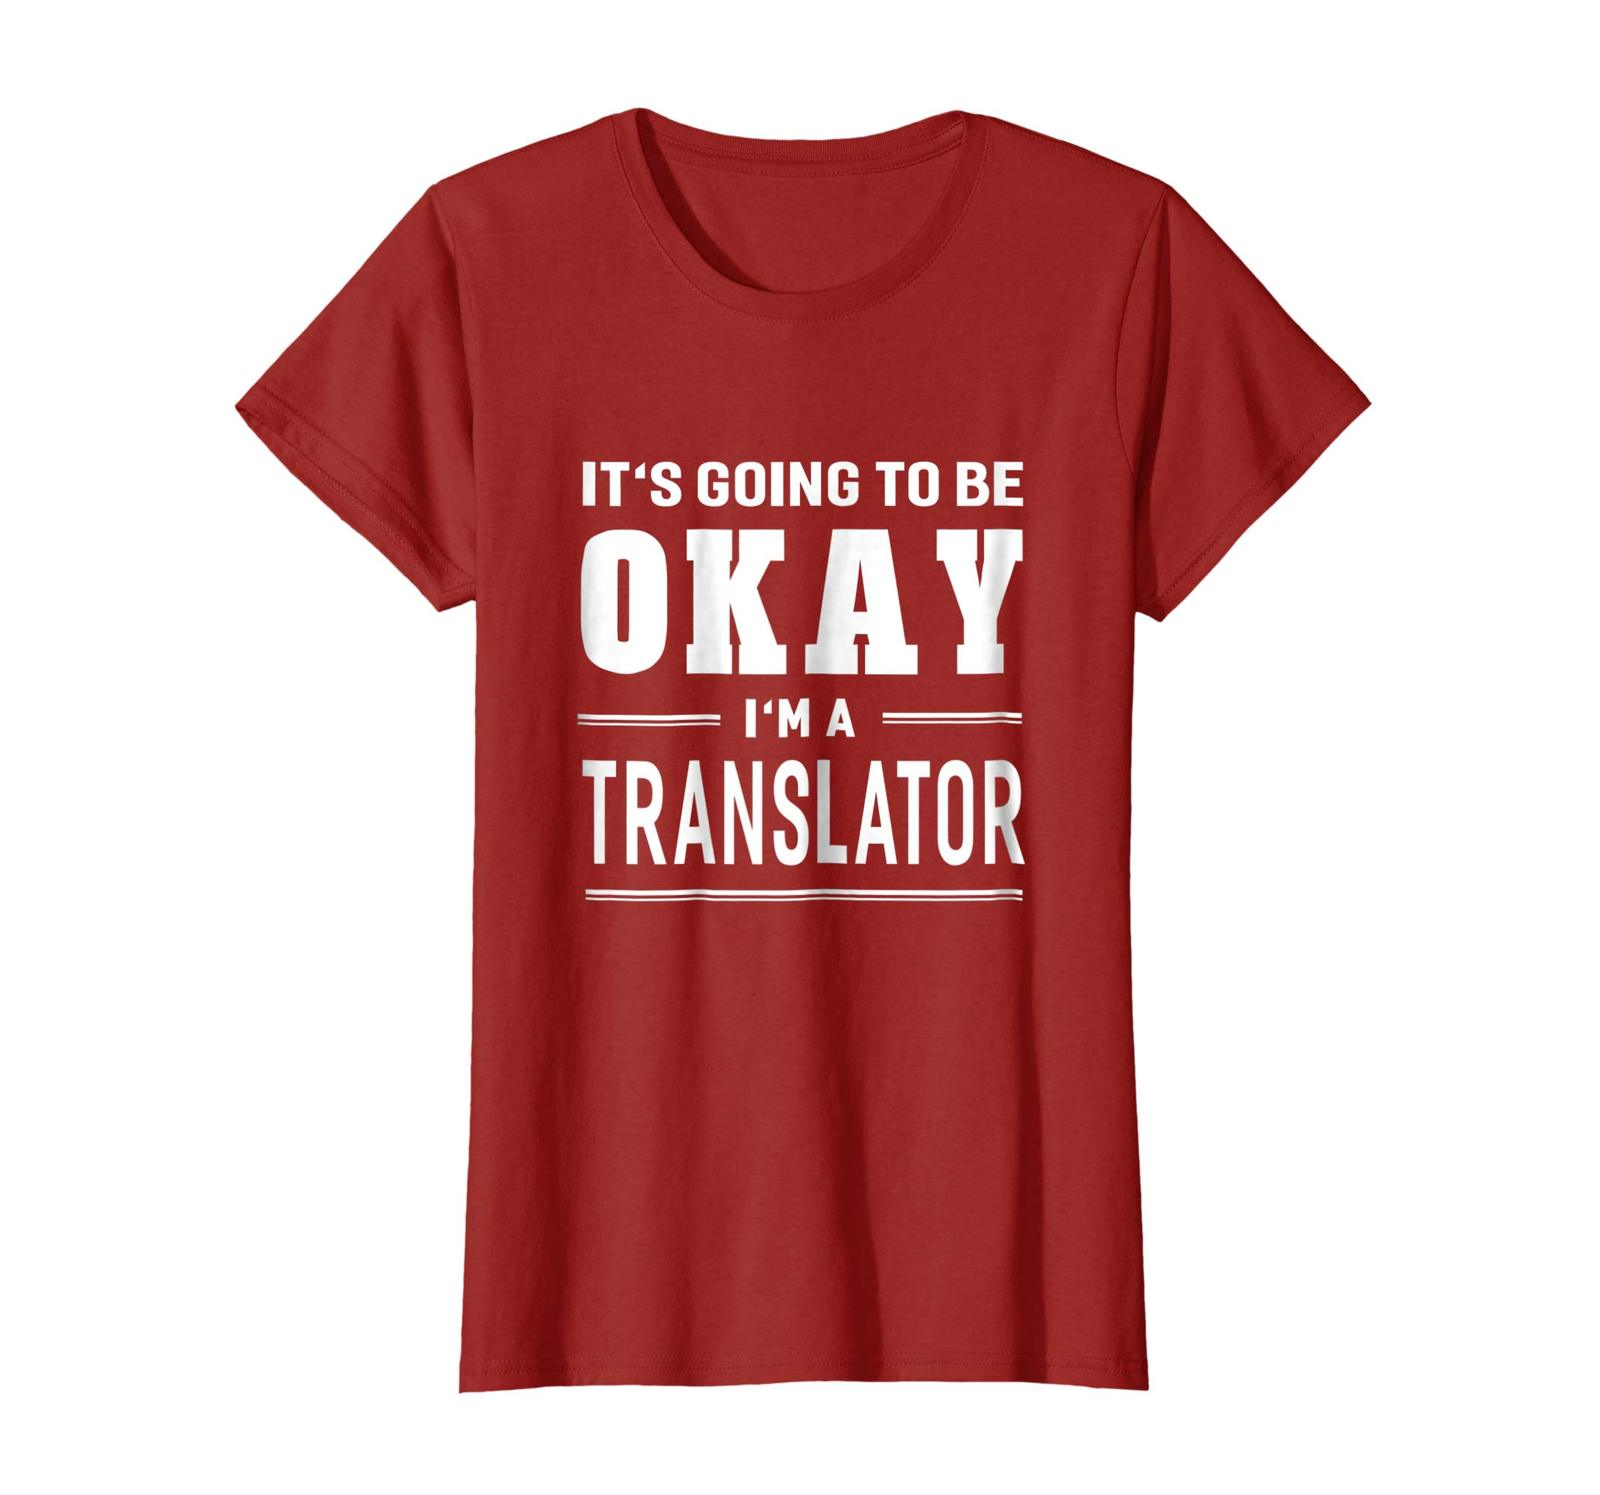 Primary image for New Shirts - It's Going To Be Okay I'm A Translator T-Shirt Funny Sayings Wowen